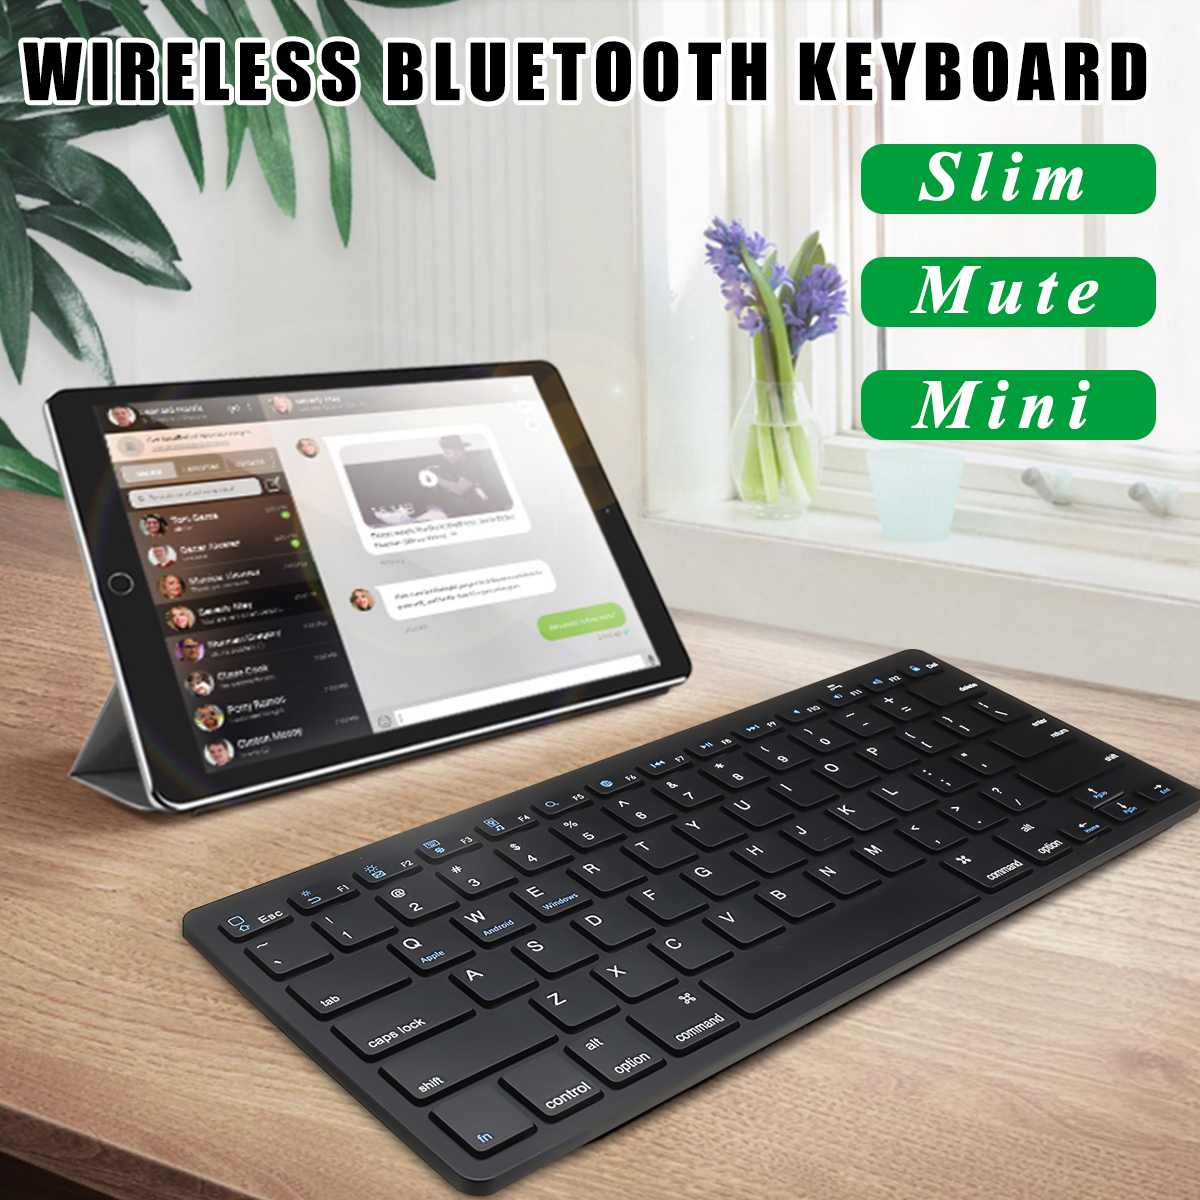 LEORY Ultra-slim Wireless Keyboard bluetooth 3.0 For iPad for iPhone Series for MacBook for Samsung Phone PC Computer Tablet